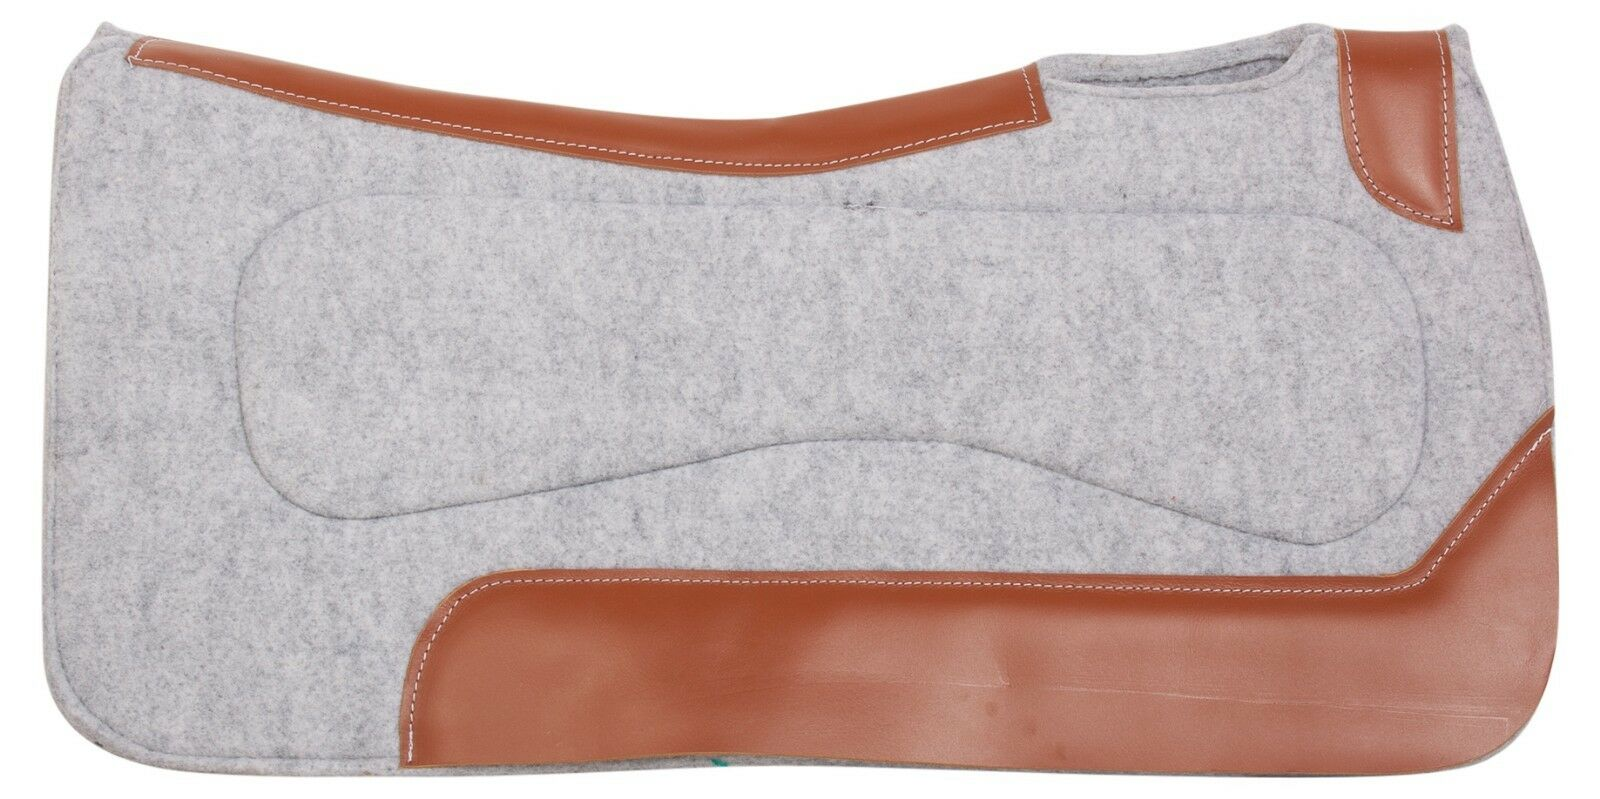 GREY CORRECTIVE WOOL FELT THERAPEUTIC  PLEASURE TRAIL WESTERN HORSE SADDLE PAD  cheap and high quality